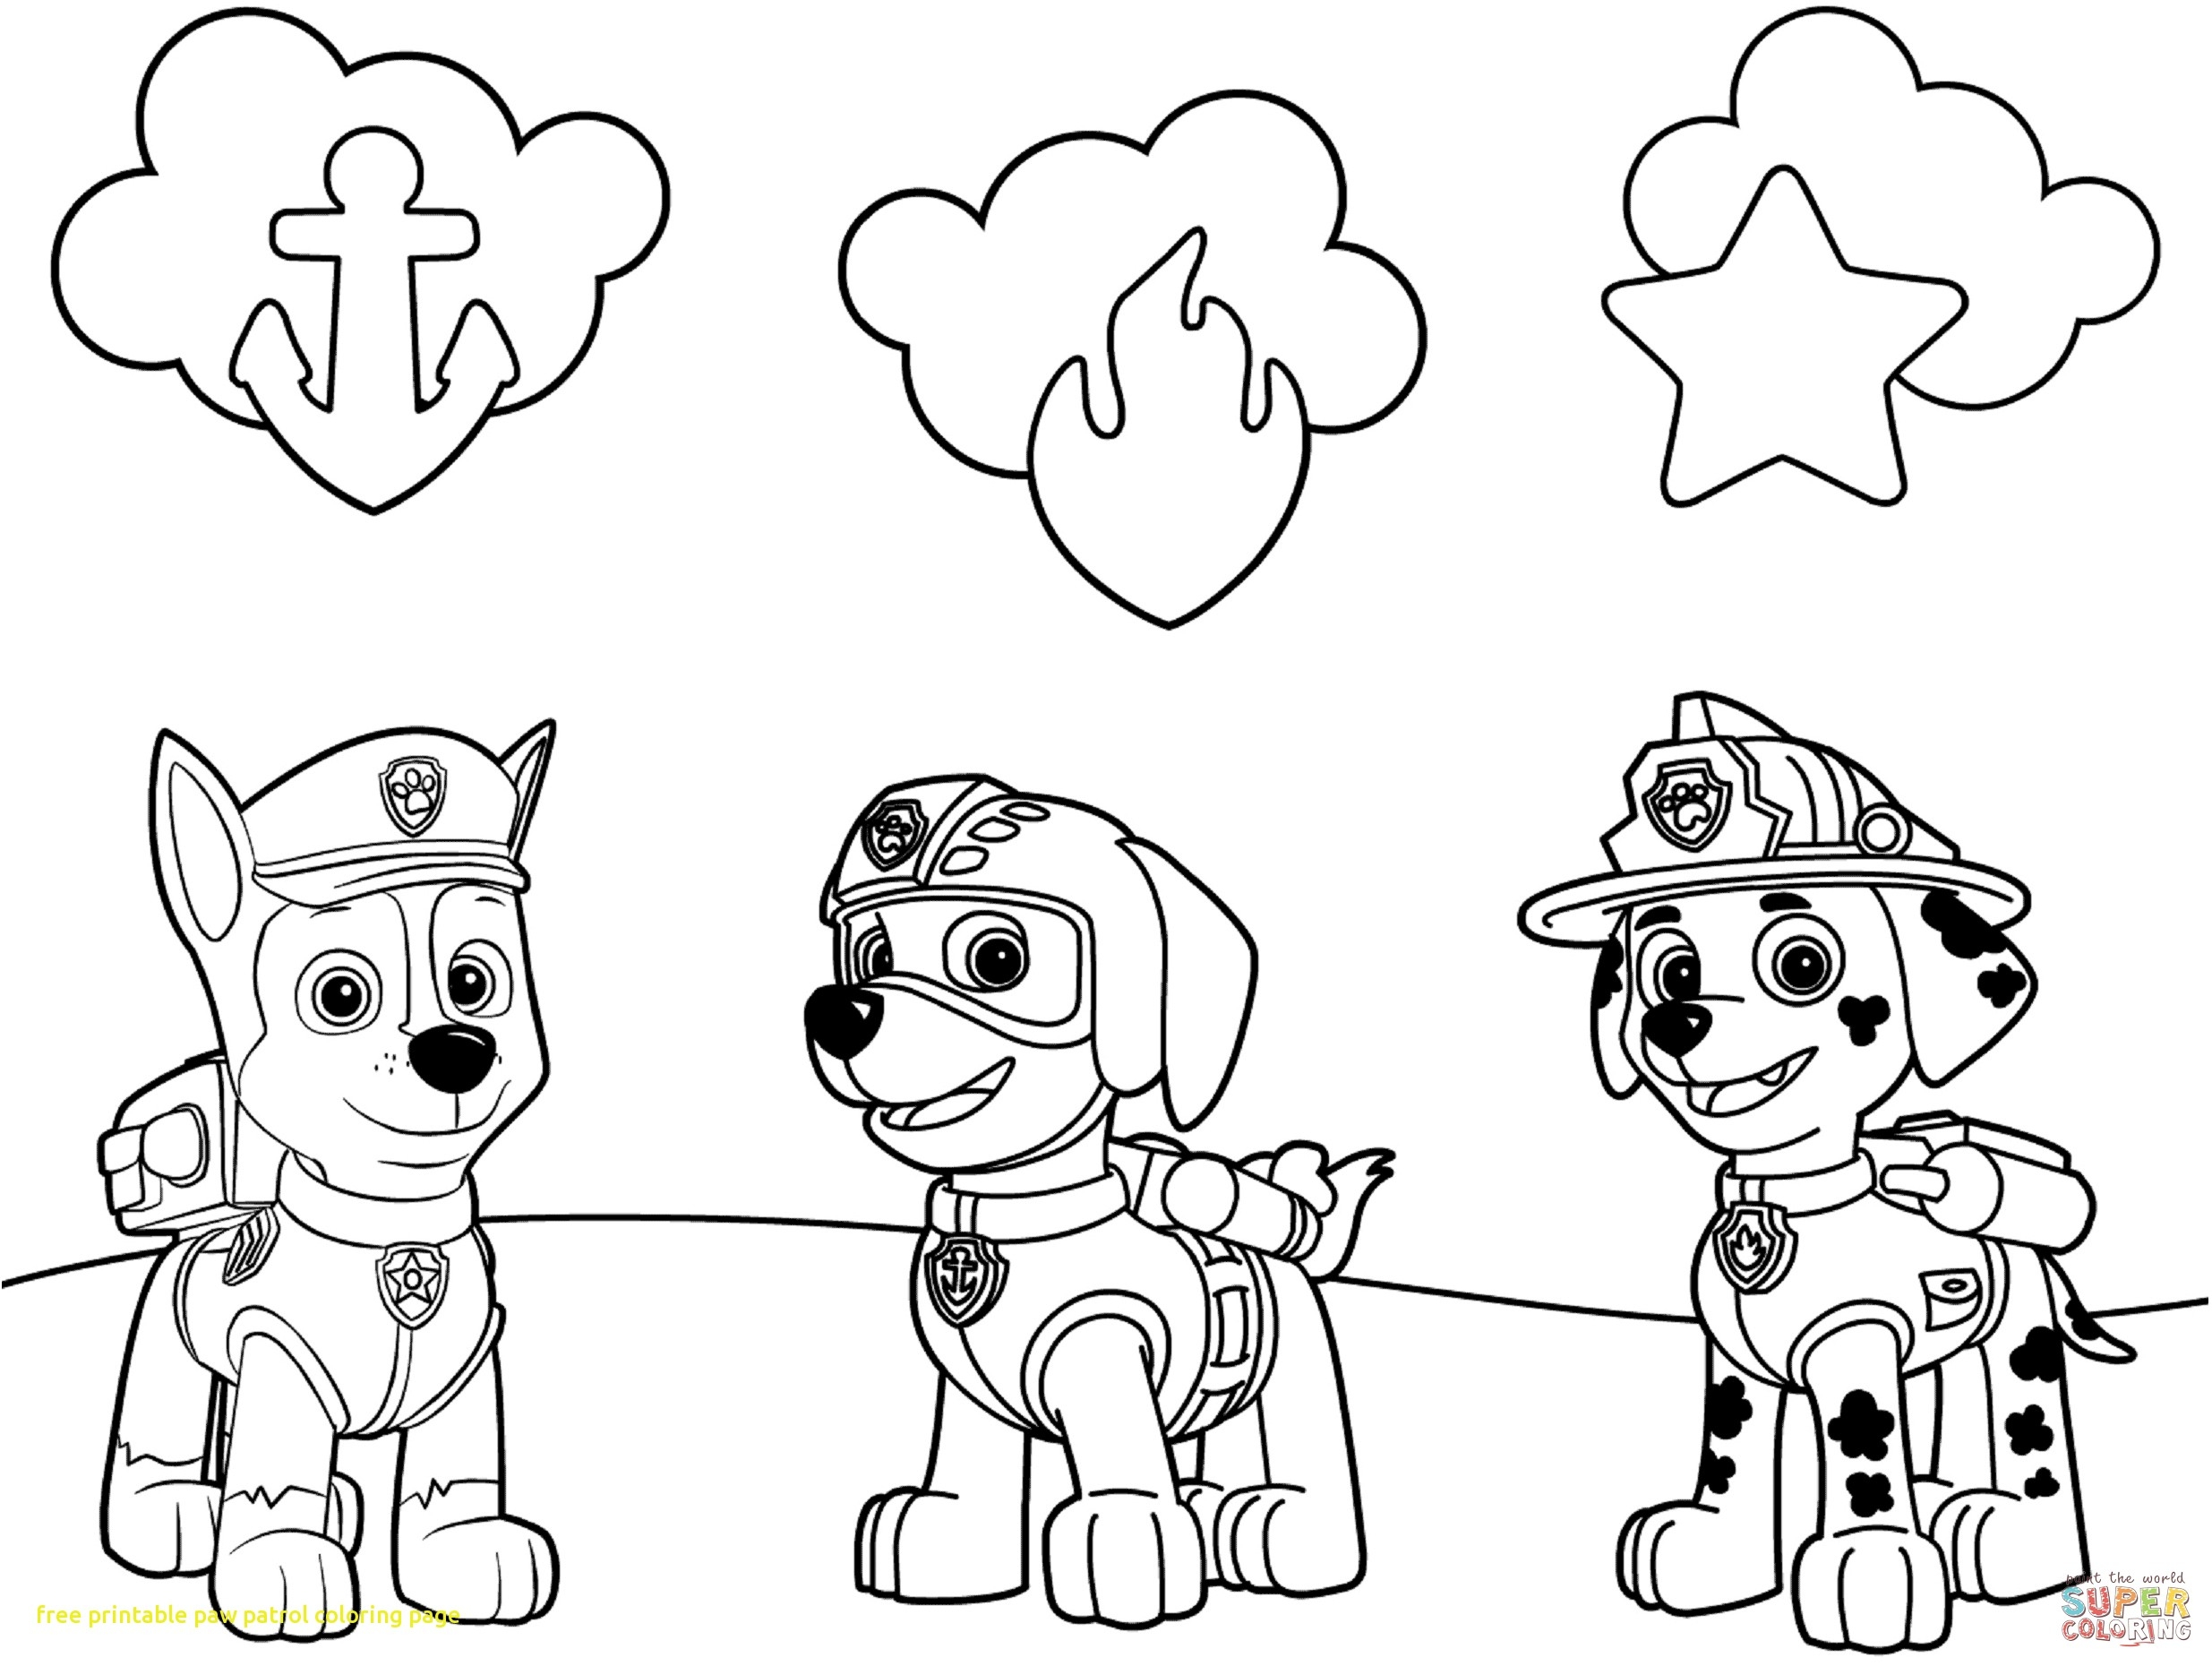 Chase Paw Patrol Coloring Page at GetDrawings | Free download